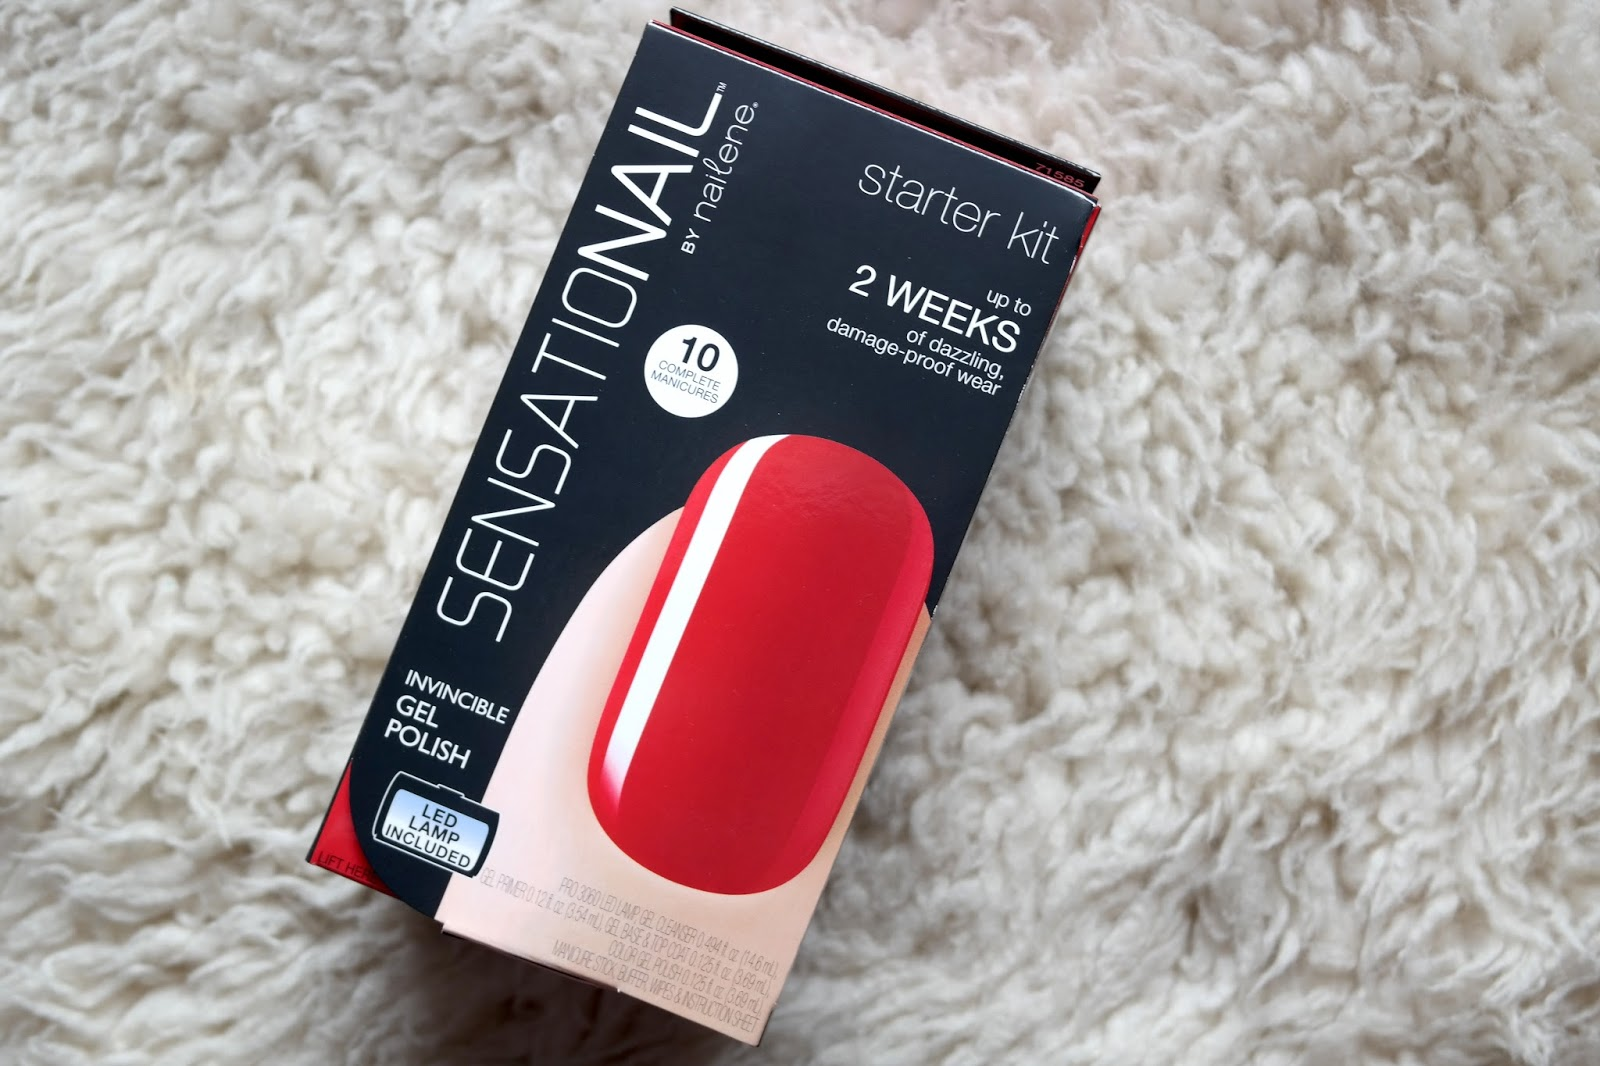 Sensationail starter kit review jenna suth the starter kit is described as being everything you need for 10 complete salon quality gel nail manicures that works out at 699 a manicure and a led solutioingenieria Images